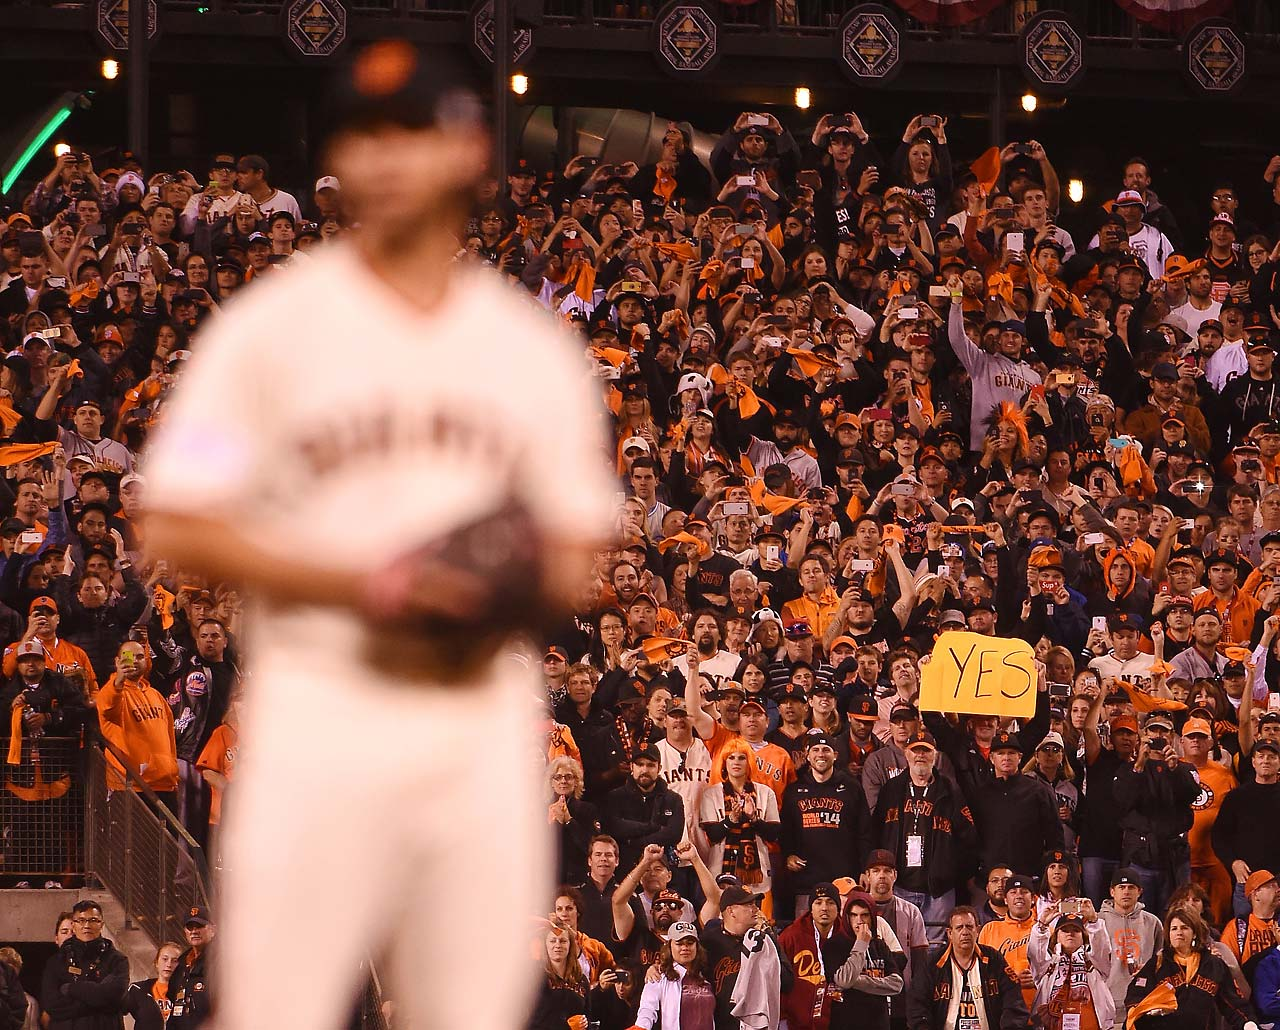 A Giants fan hold up his YES sign in the background as San Francisco moved within a win of capturing the World Series title as the series heads back to Kansas City.